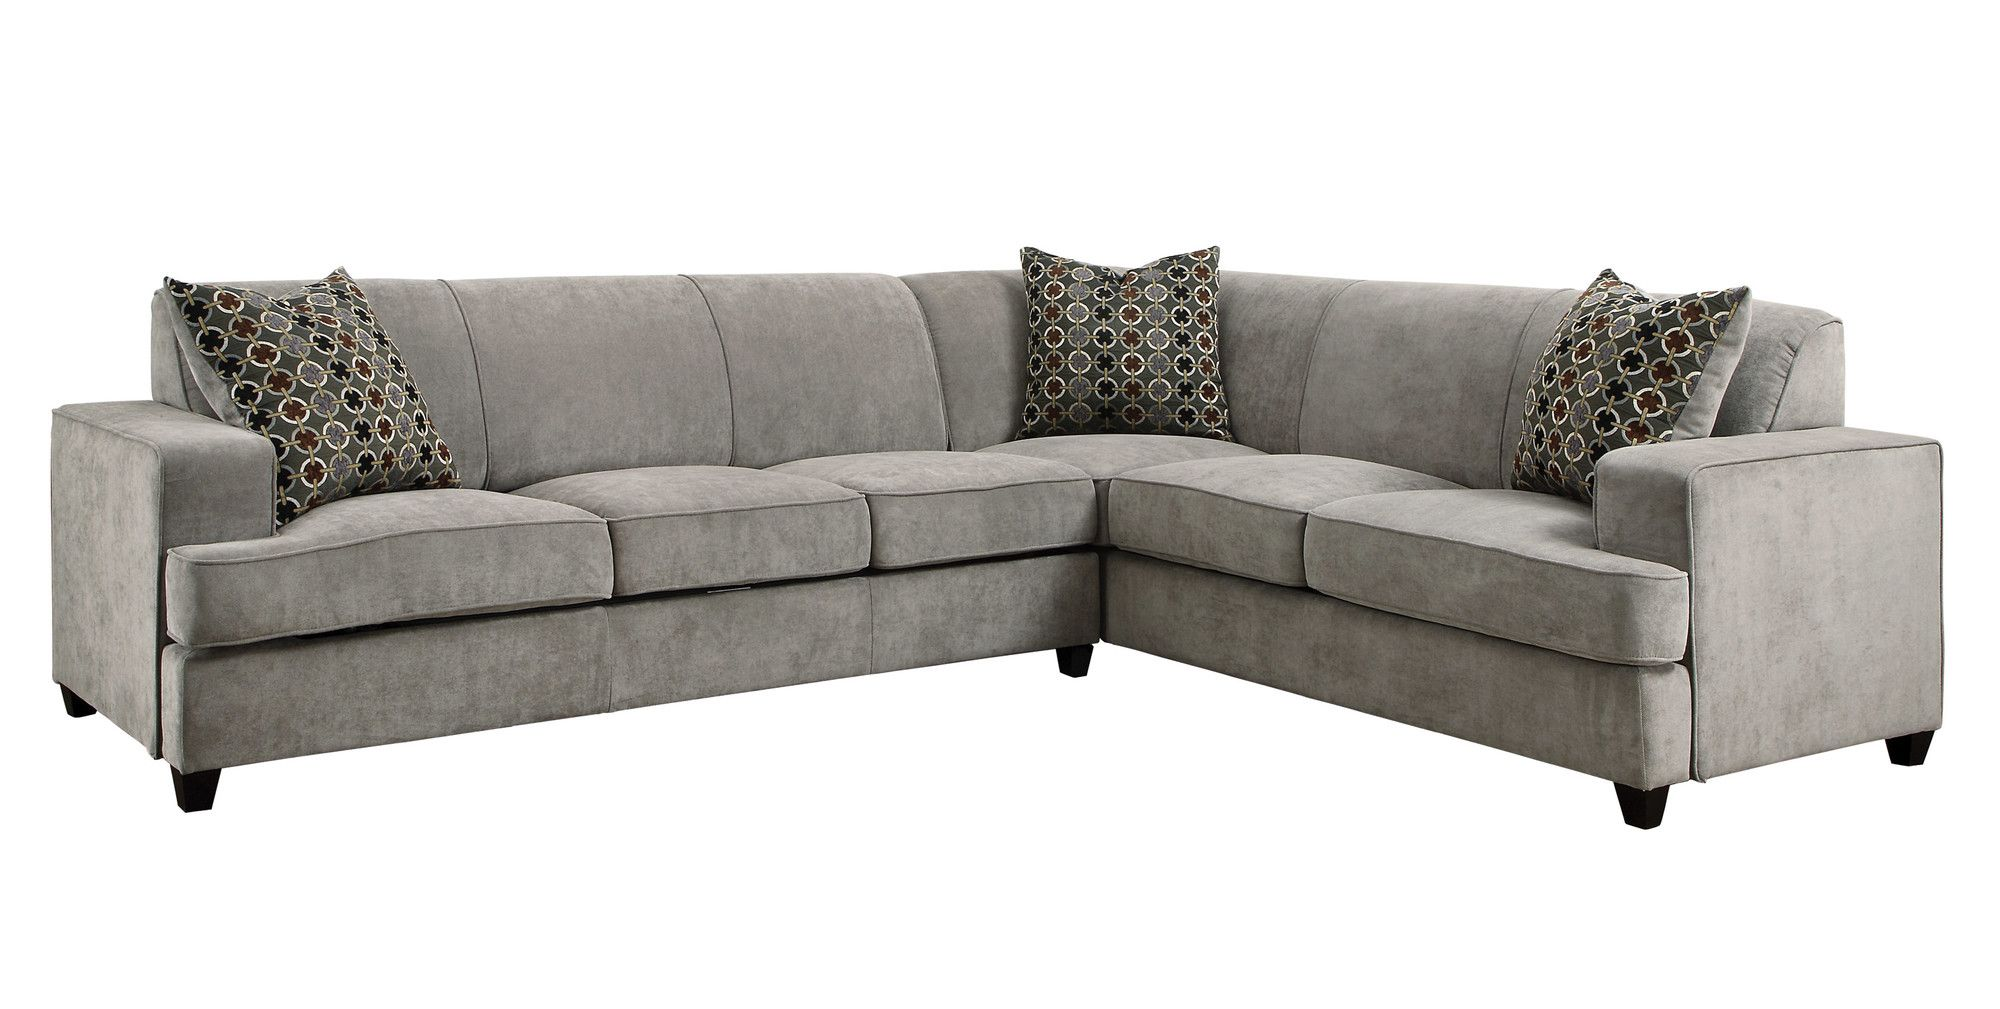 Pleasant Lola Sectional Joss Main Overall 34 H X 109 W X 86 D Caraccident5 Cool Chair Designs And Ideas Caraccident5Info